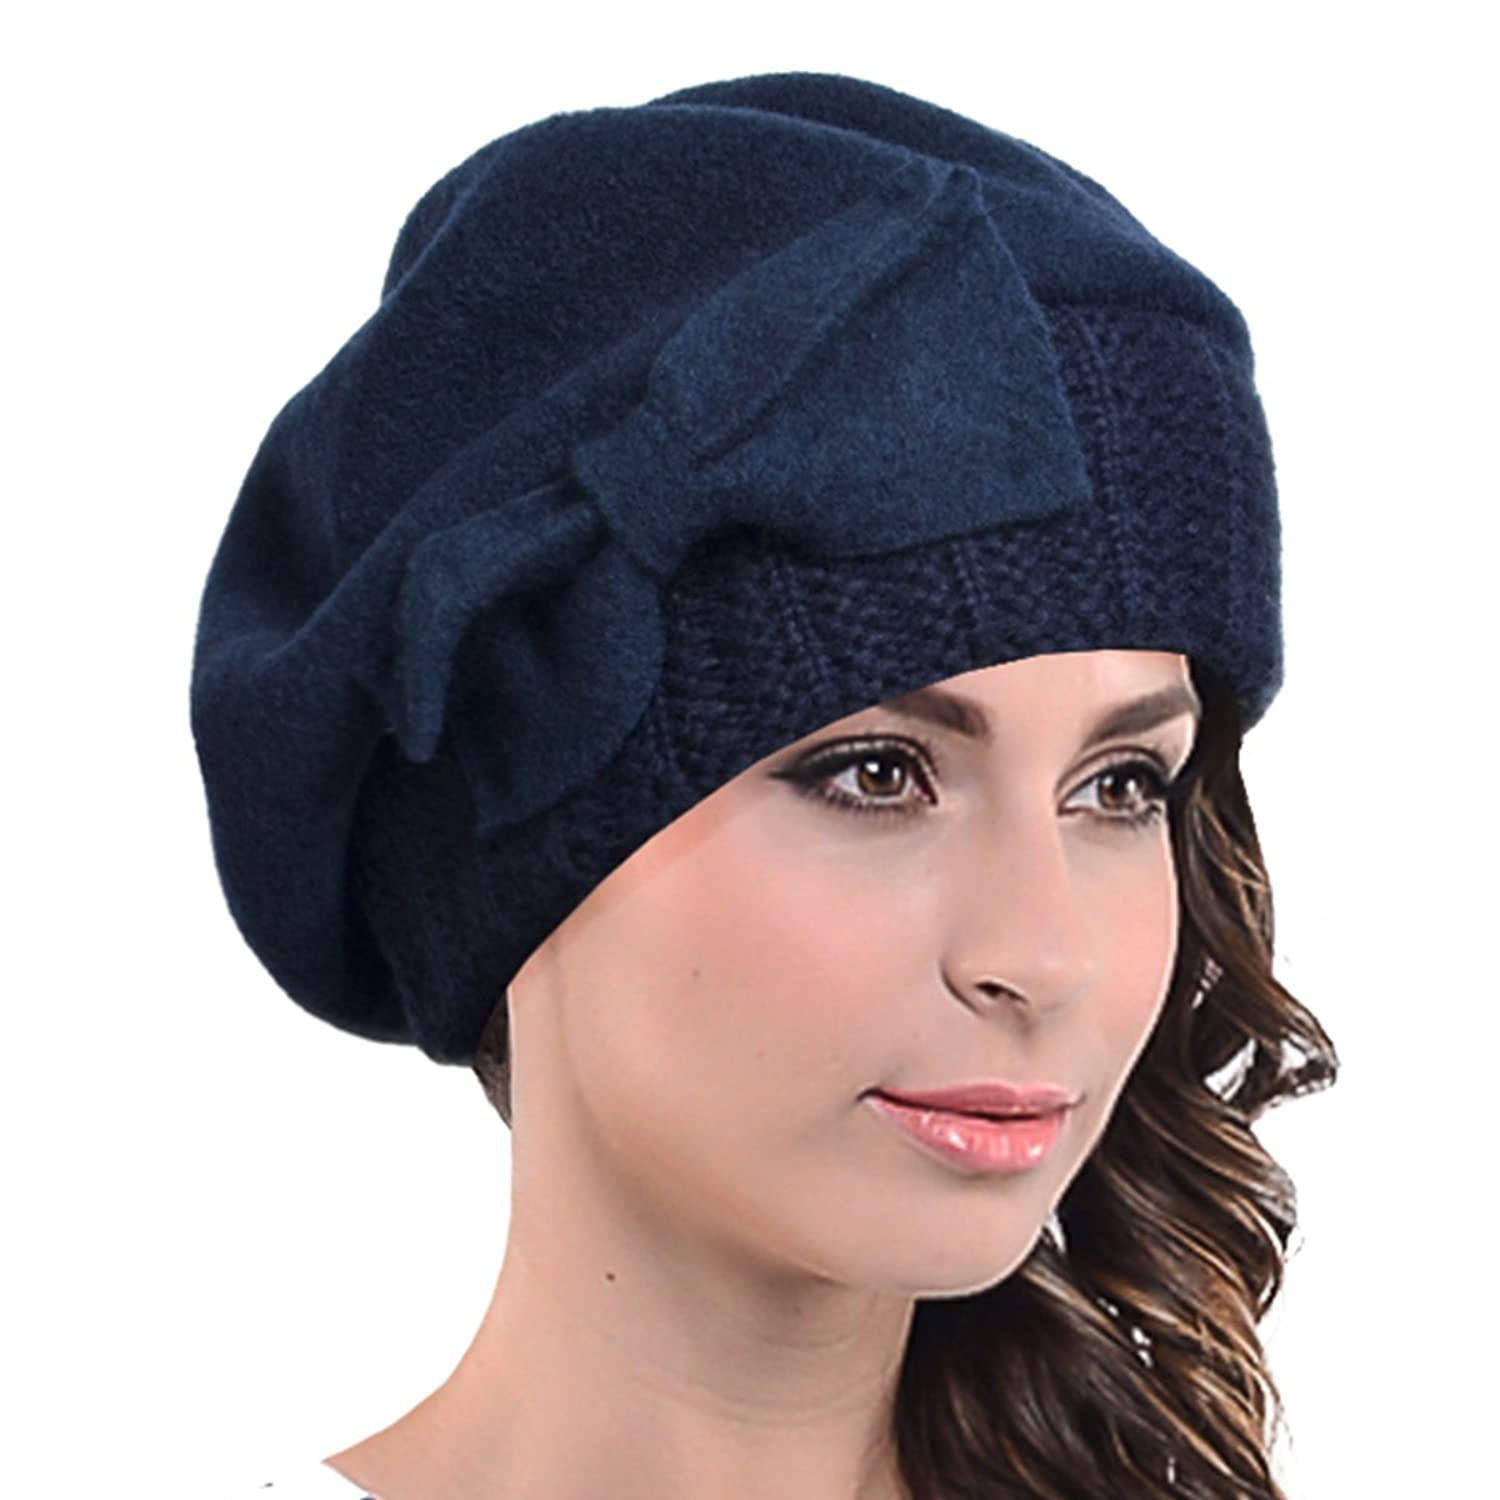 74a71a764a6 1920s Style Hats Lady French Beret Wool Beret Chic Beanie Winter Hat  Jf-br034  21.99